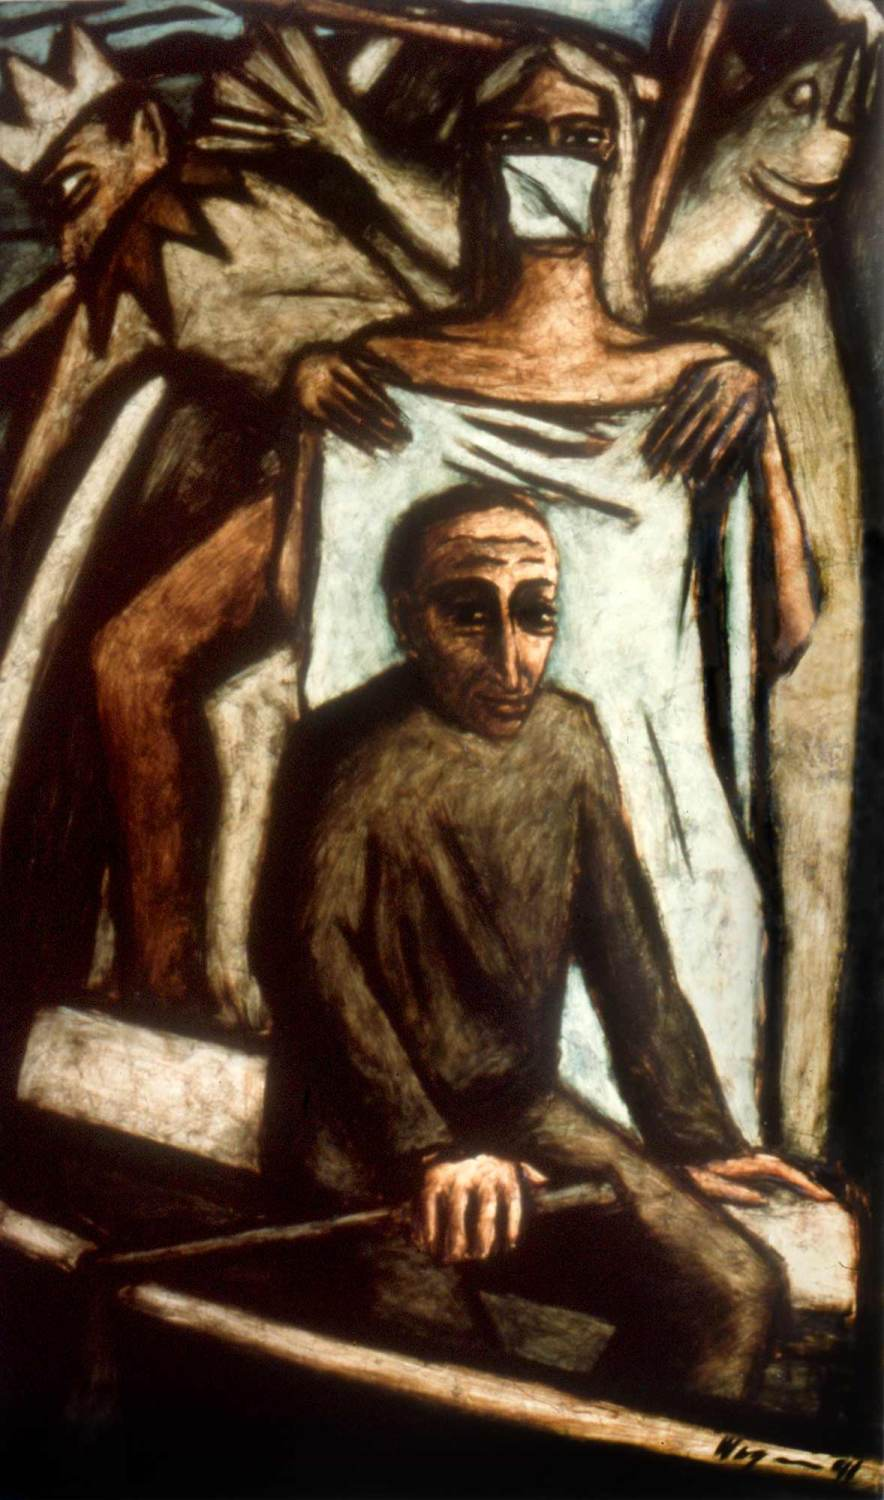 Narrenschiff, oil on panel, 48 X 36, 1991, destroyed